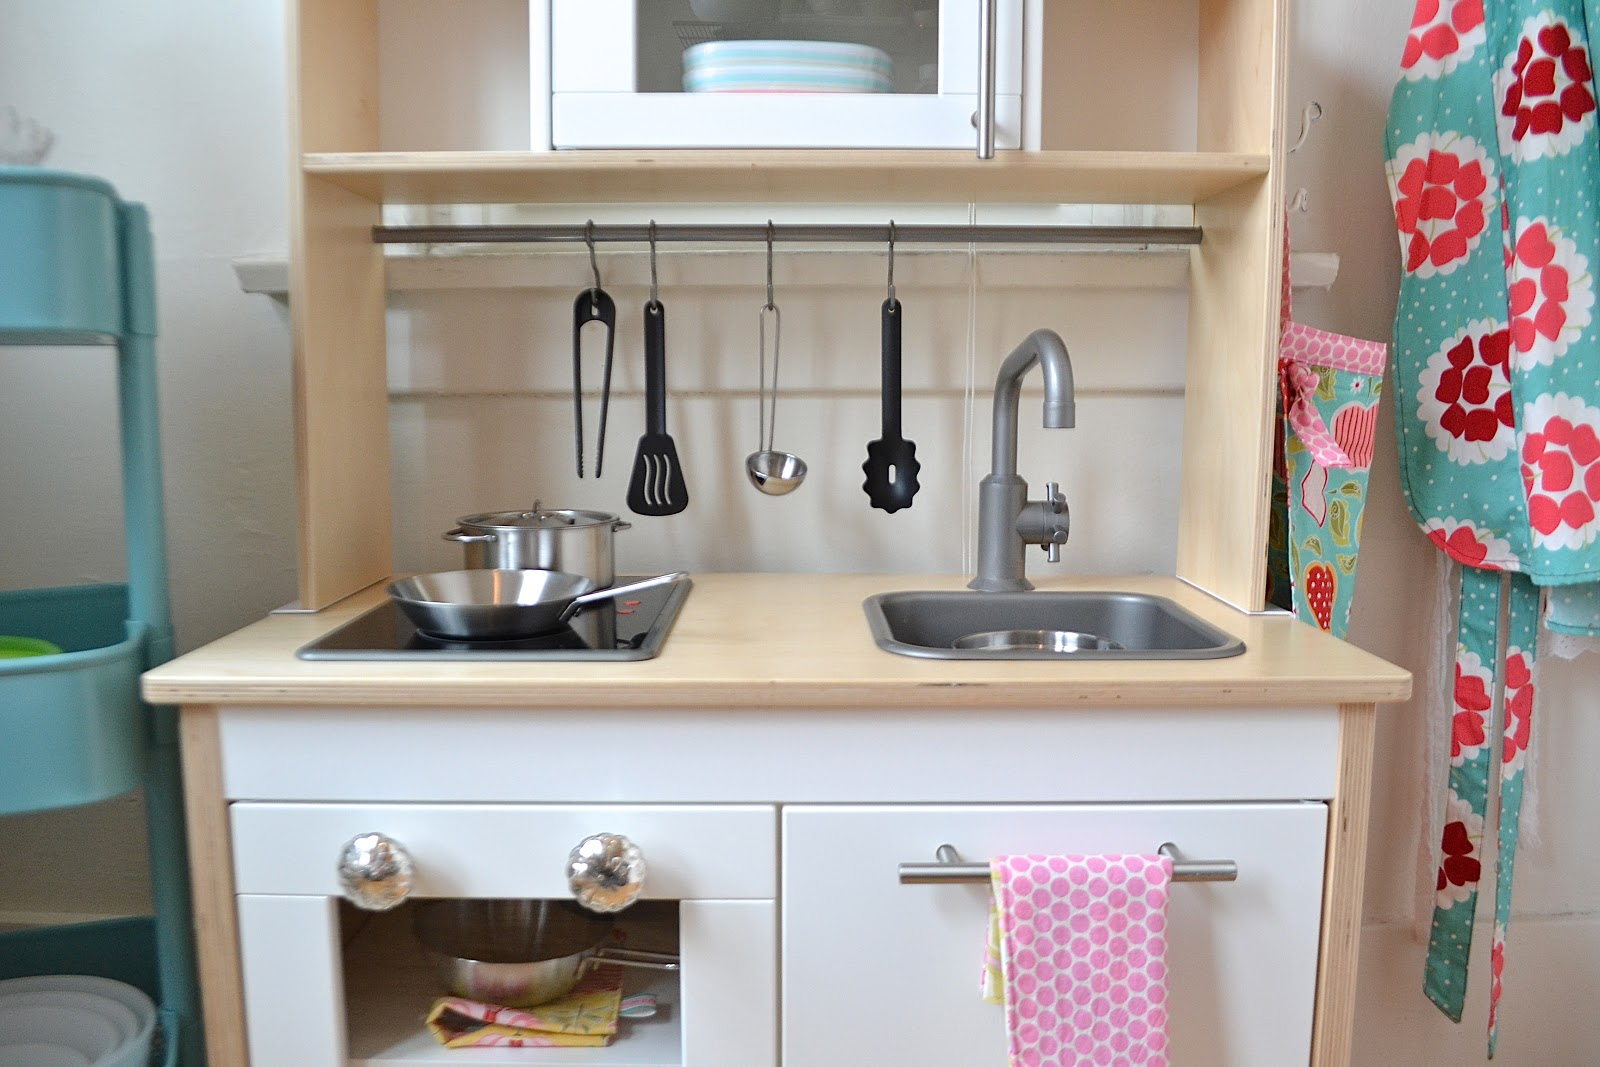 ikea ideas for small kitchens fruit basket kitchen smart and wise space utilization very